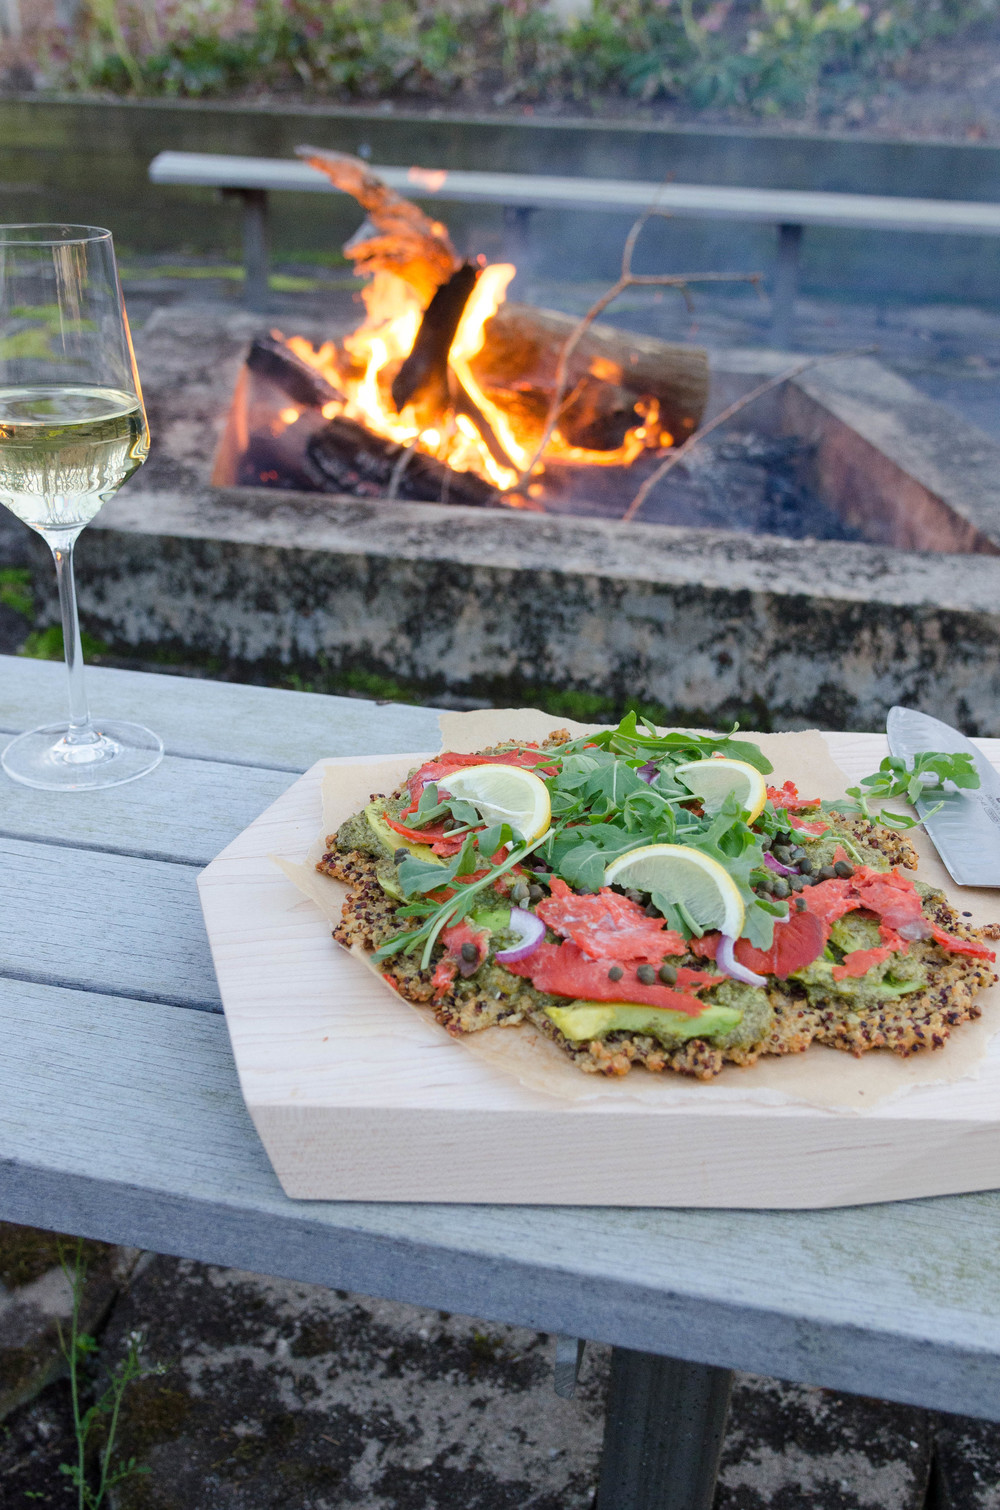 Quinoa Pizza with Smoked Salmon and Rocket Pesto recipe by Eat Real Food.